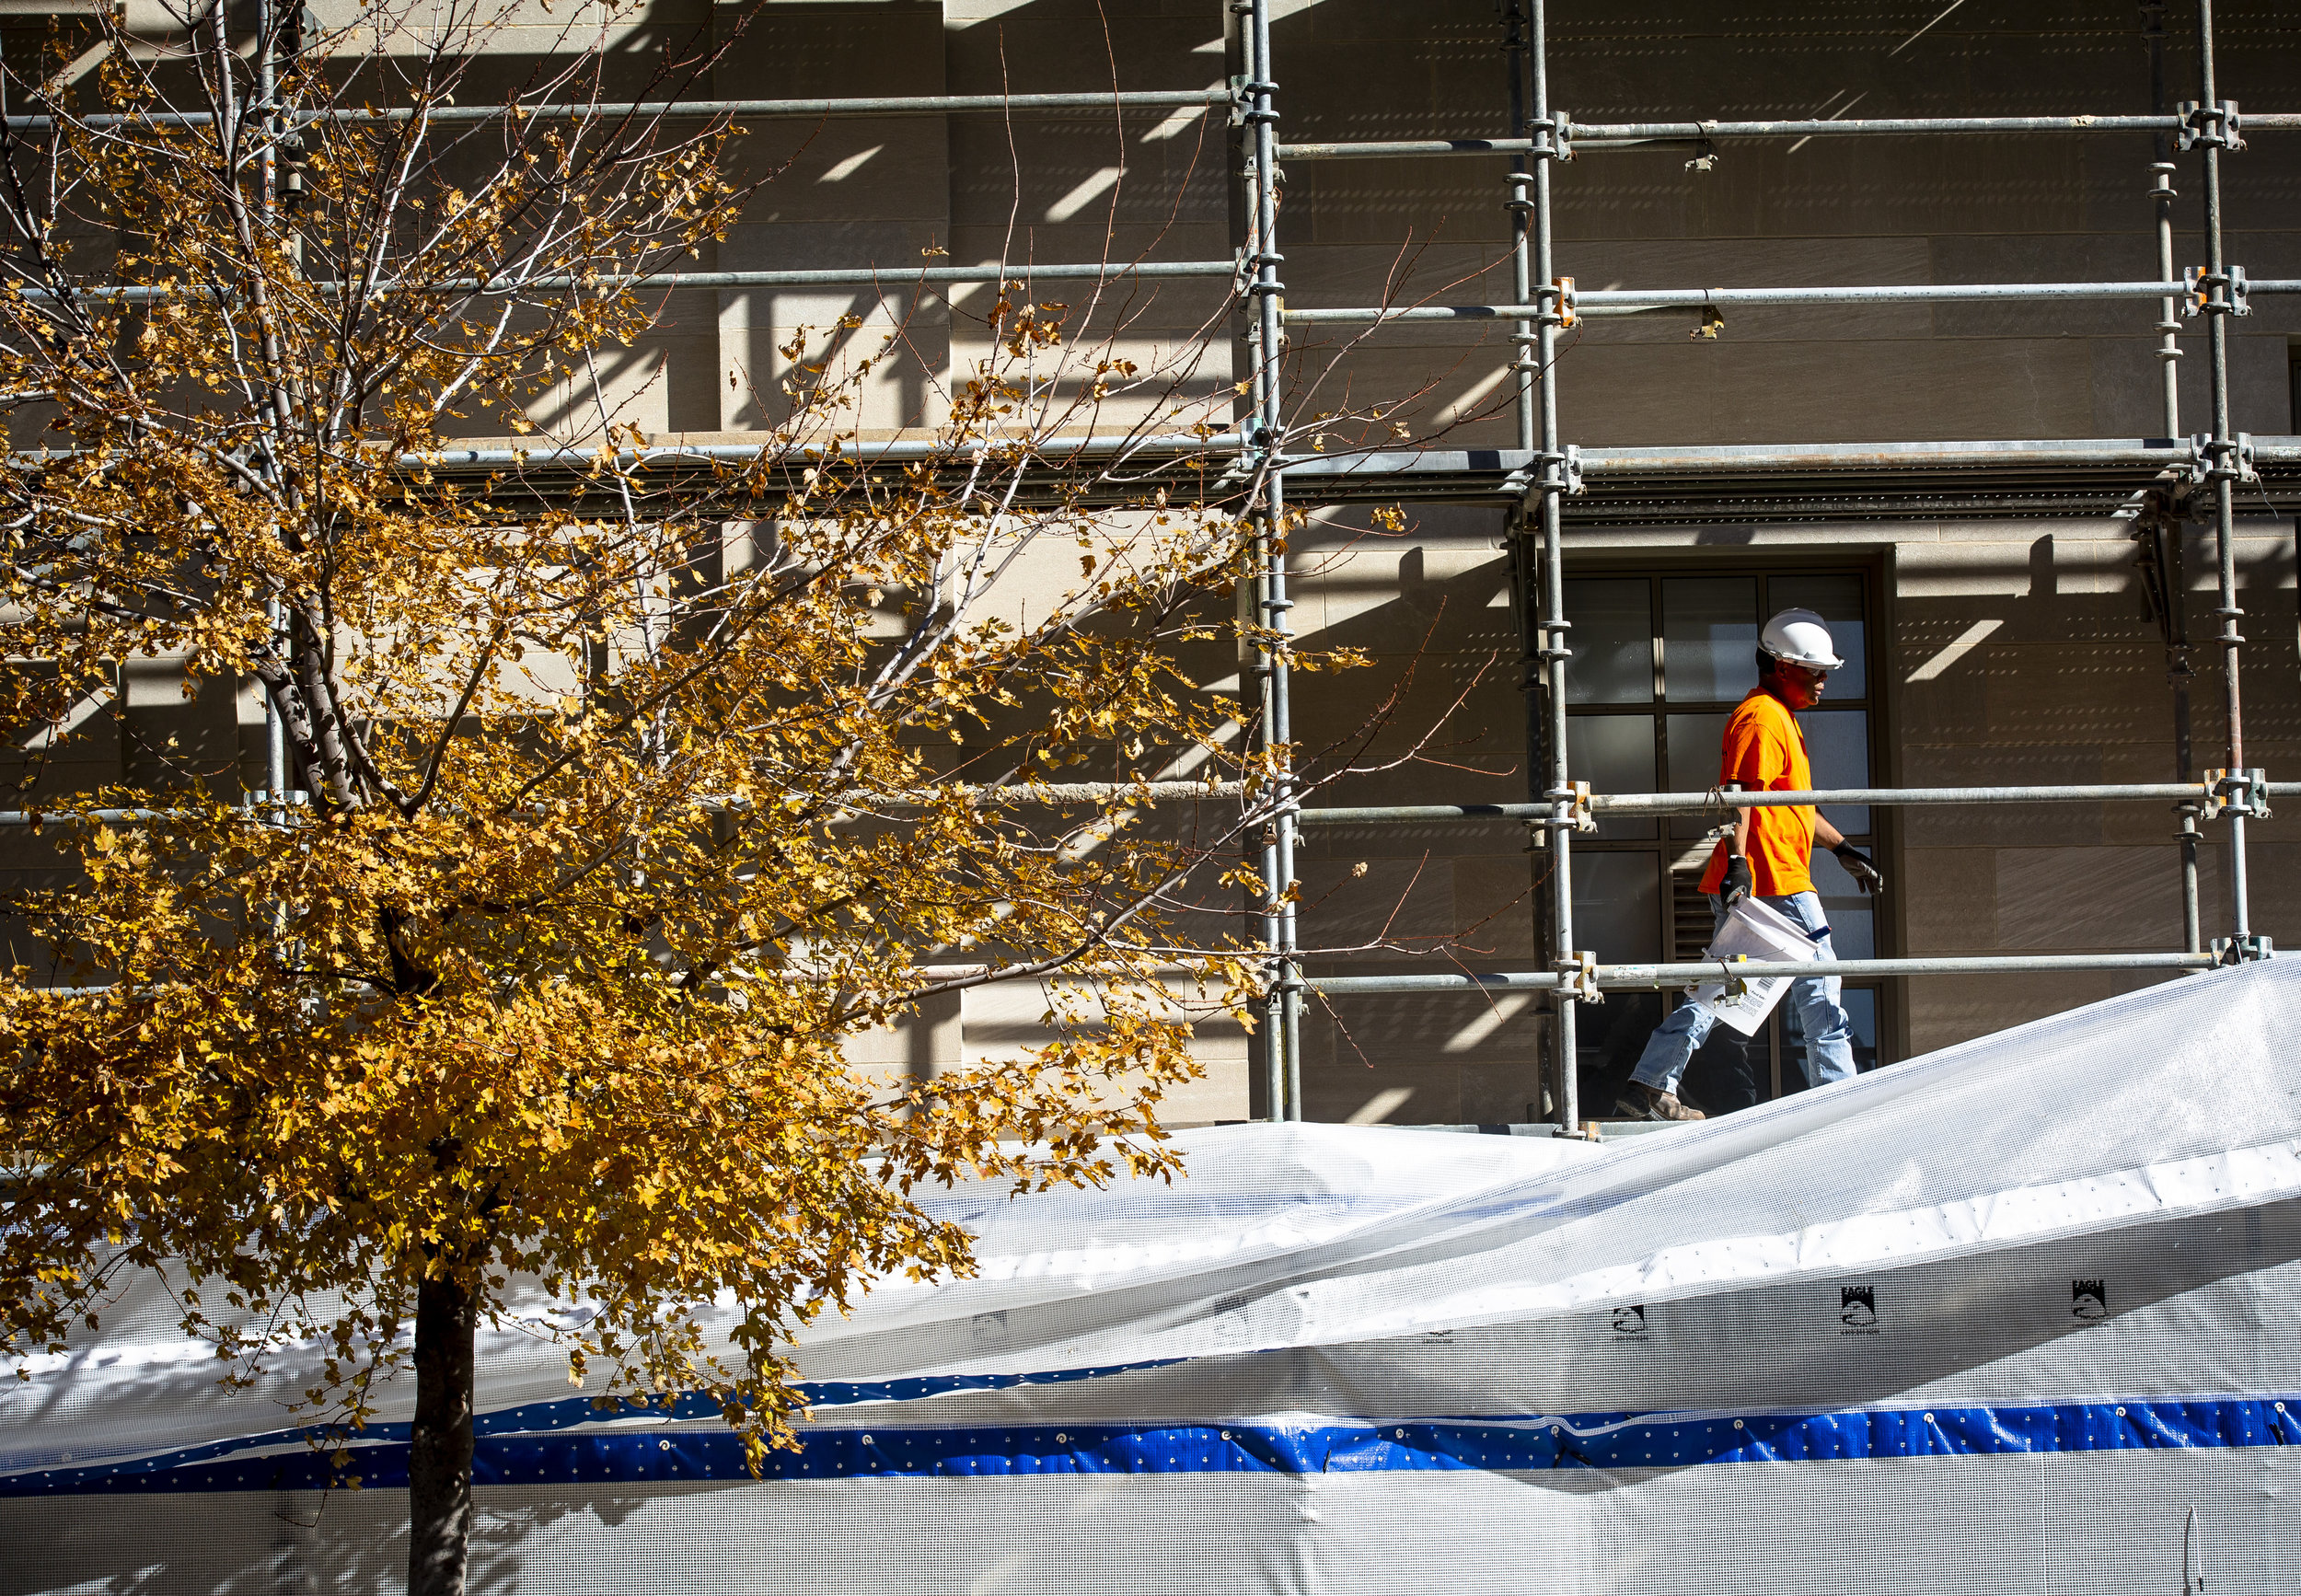 Erick Movataya works on removing the protective plastic wrap that has covered the west side of the Paul Findley Federal Building and U.S. Courthouse at 600 E. Monroe St. Tuesday, Oct. 23, 2018  in Springfield, Ill. The work on the west facade is part of a $2.6 million project to clean and repair the exterior limestone walls and terra cotta cornice, and will continue next year on the front and east sides. The building was built in 1930. [Rich Saal/The State Journal-Register]